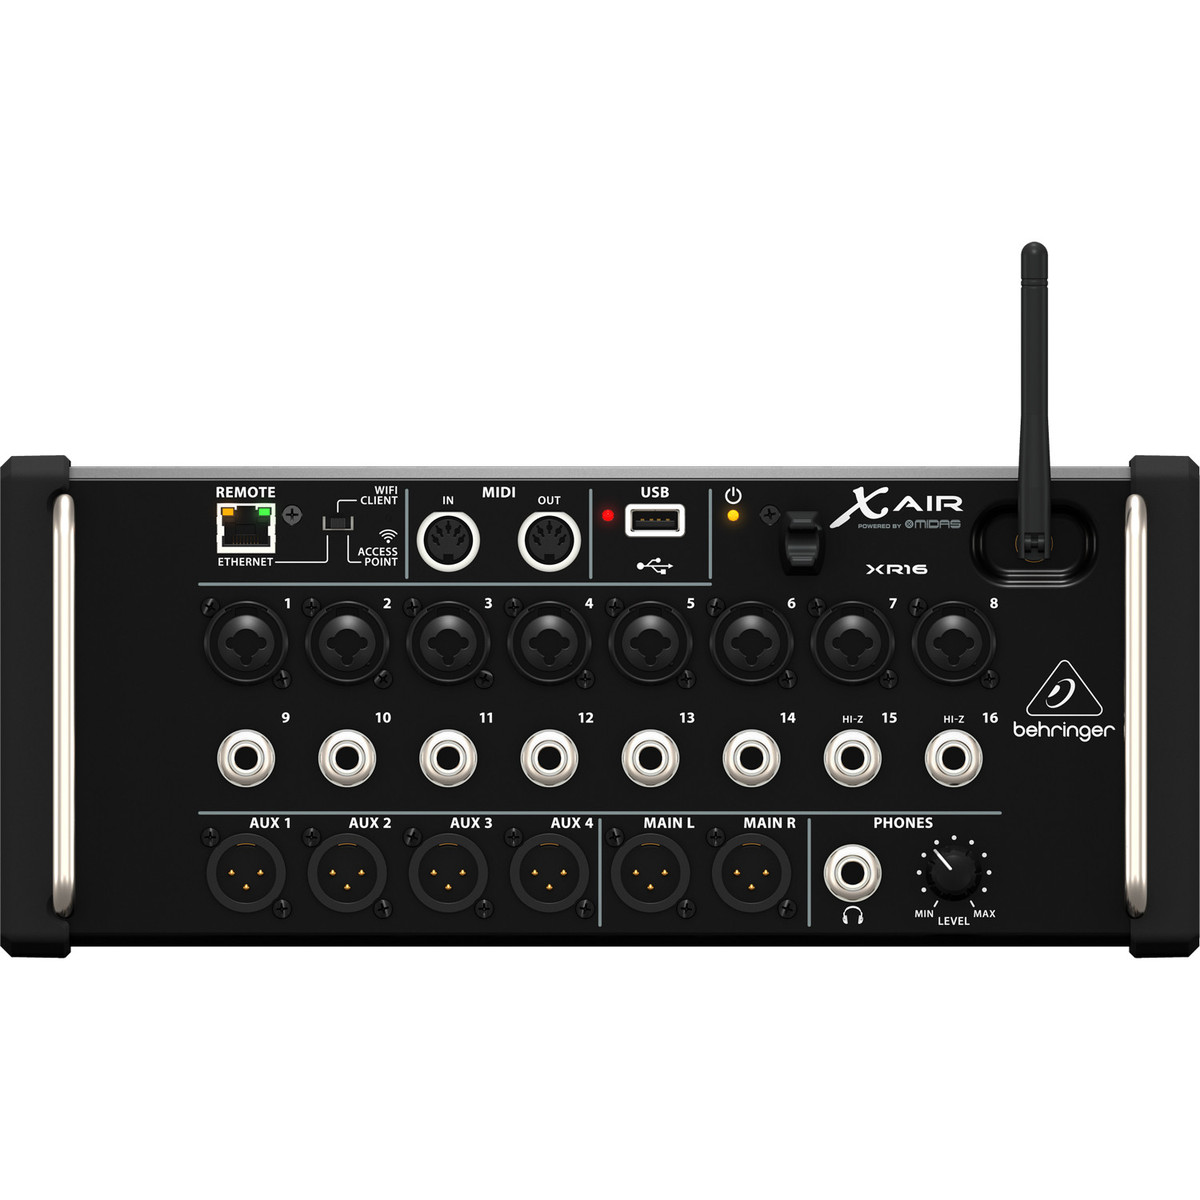 behringer x air xr16 16 channel digital mixer nearly new at gear4music. Black Bedroom Furniture Sets. Home Design Ideas